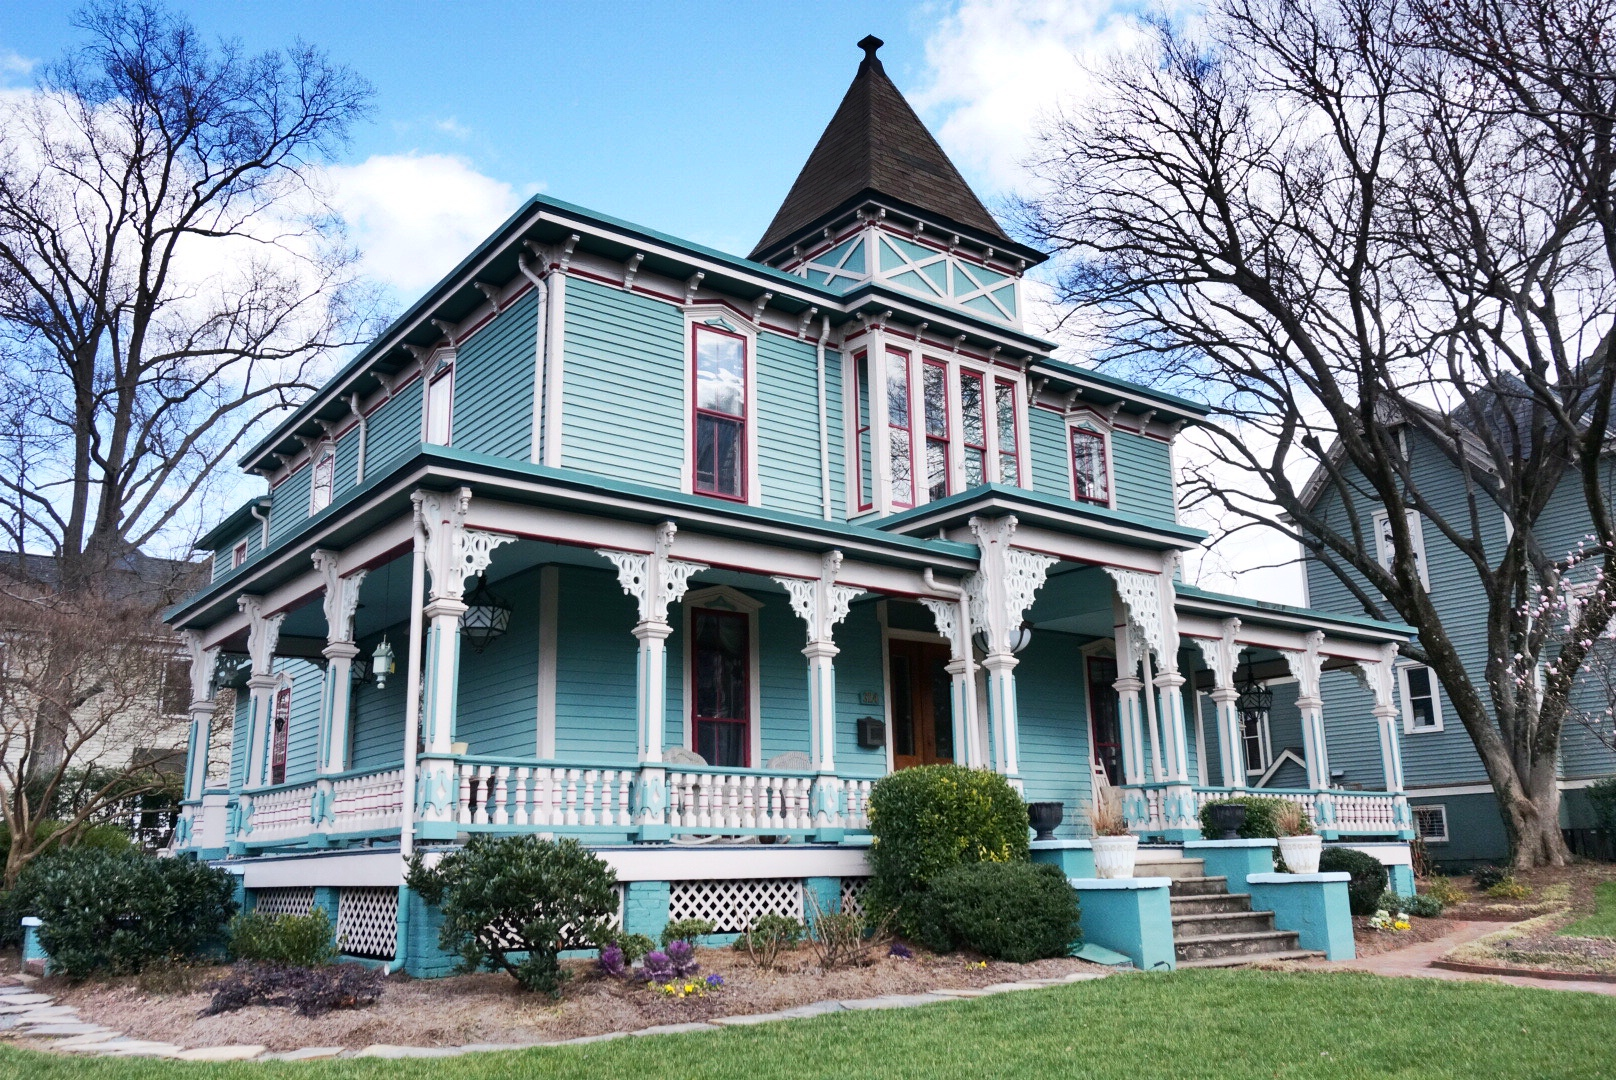 Berryhill House in Charlotte, North Carolina's historic Fourth Ward, 1884, Victorian Italianate style. The Junior League renovated the home in the mid-1970's.